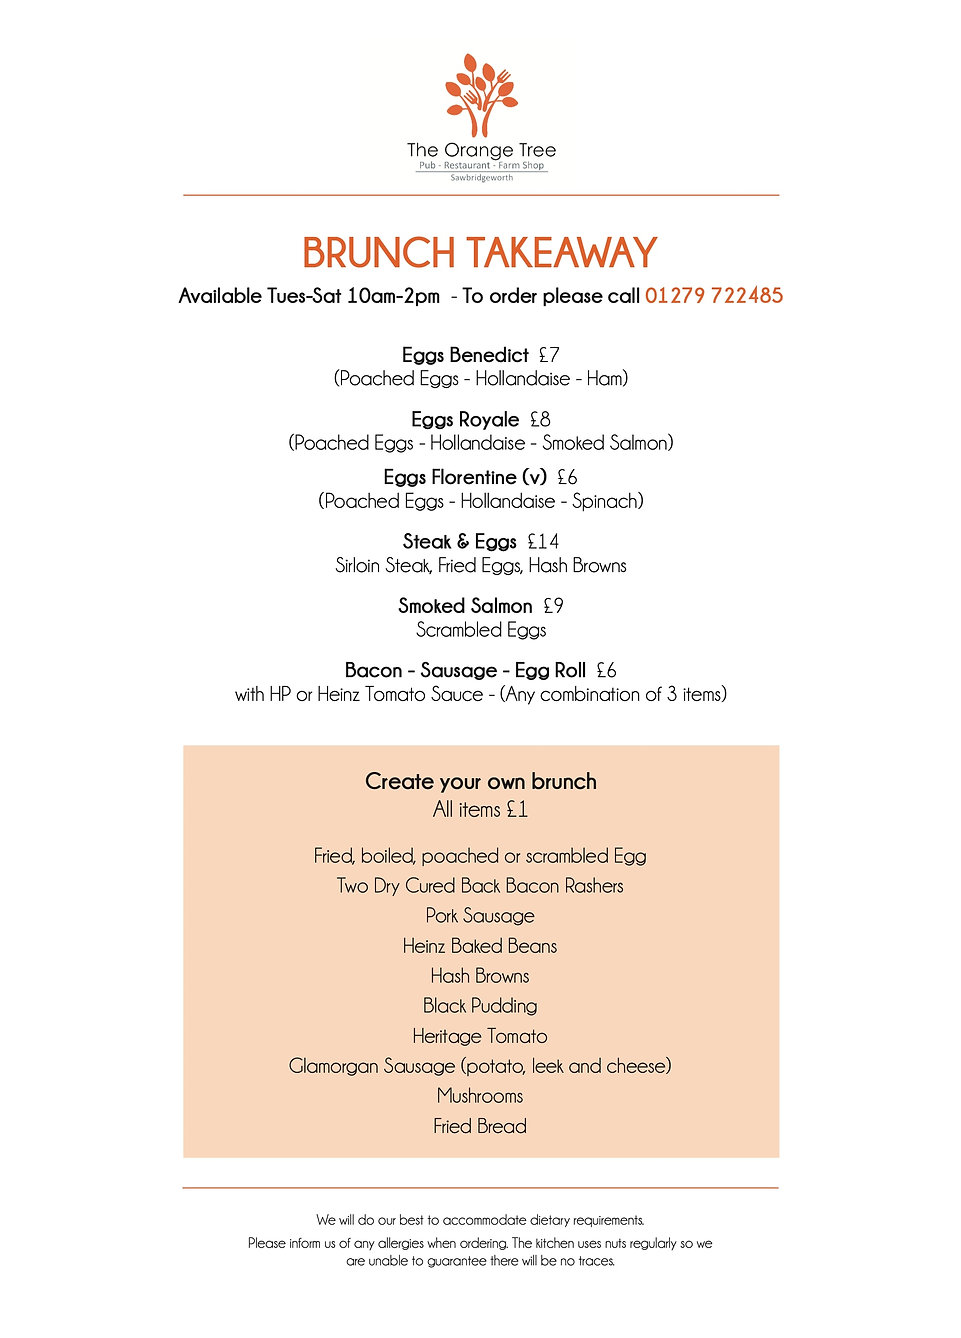 OT BRUNCH TAKEAWAY NOVEMBER 2020.jpg